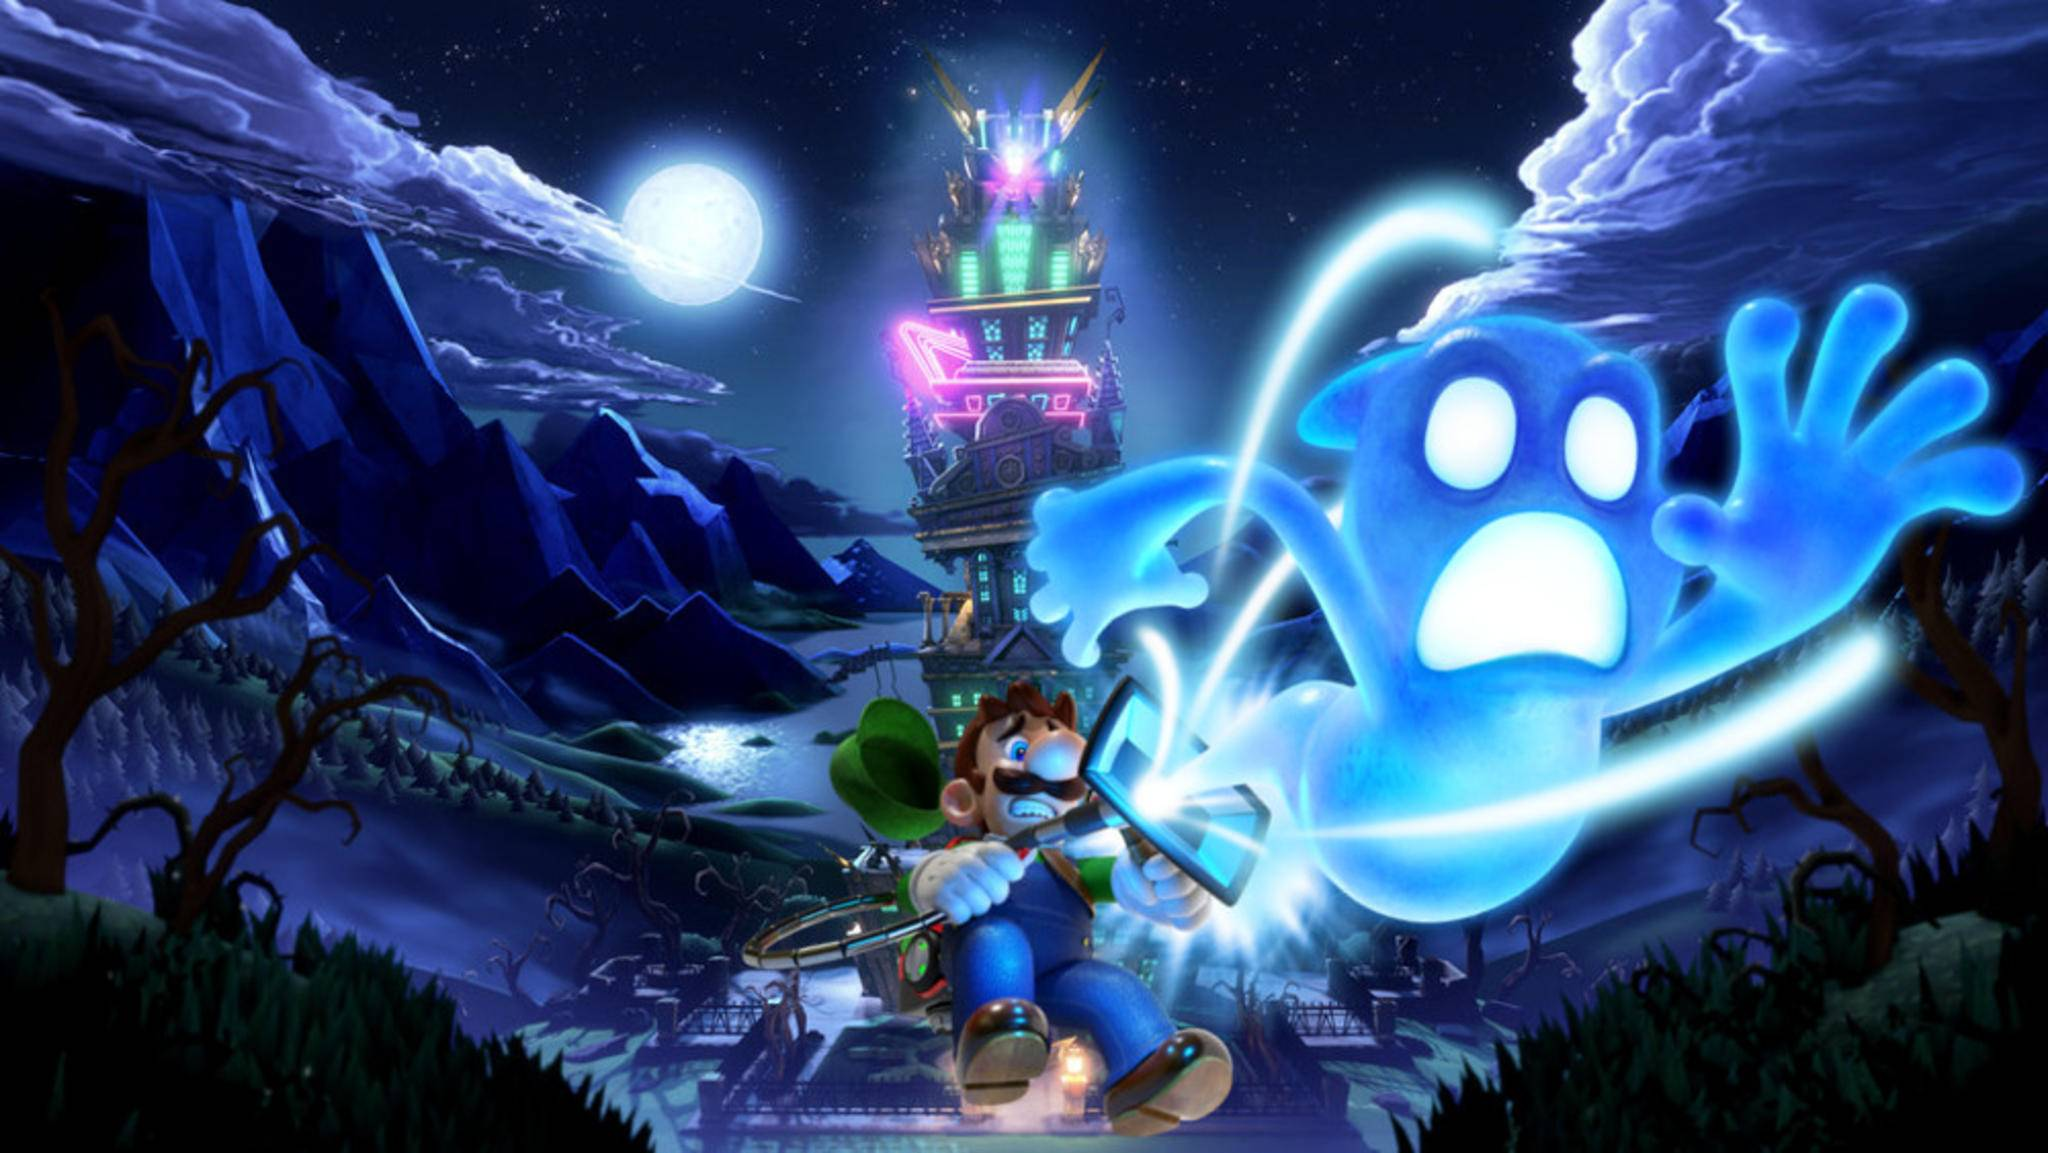 luigis-mansion-3-artwork